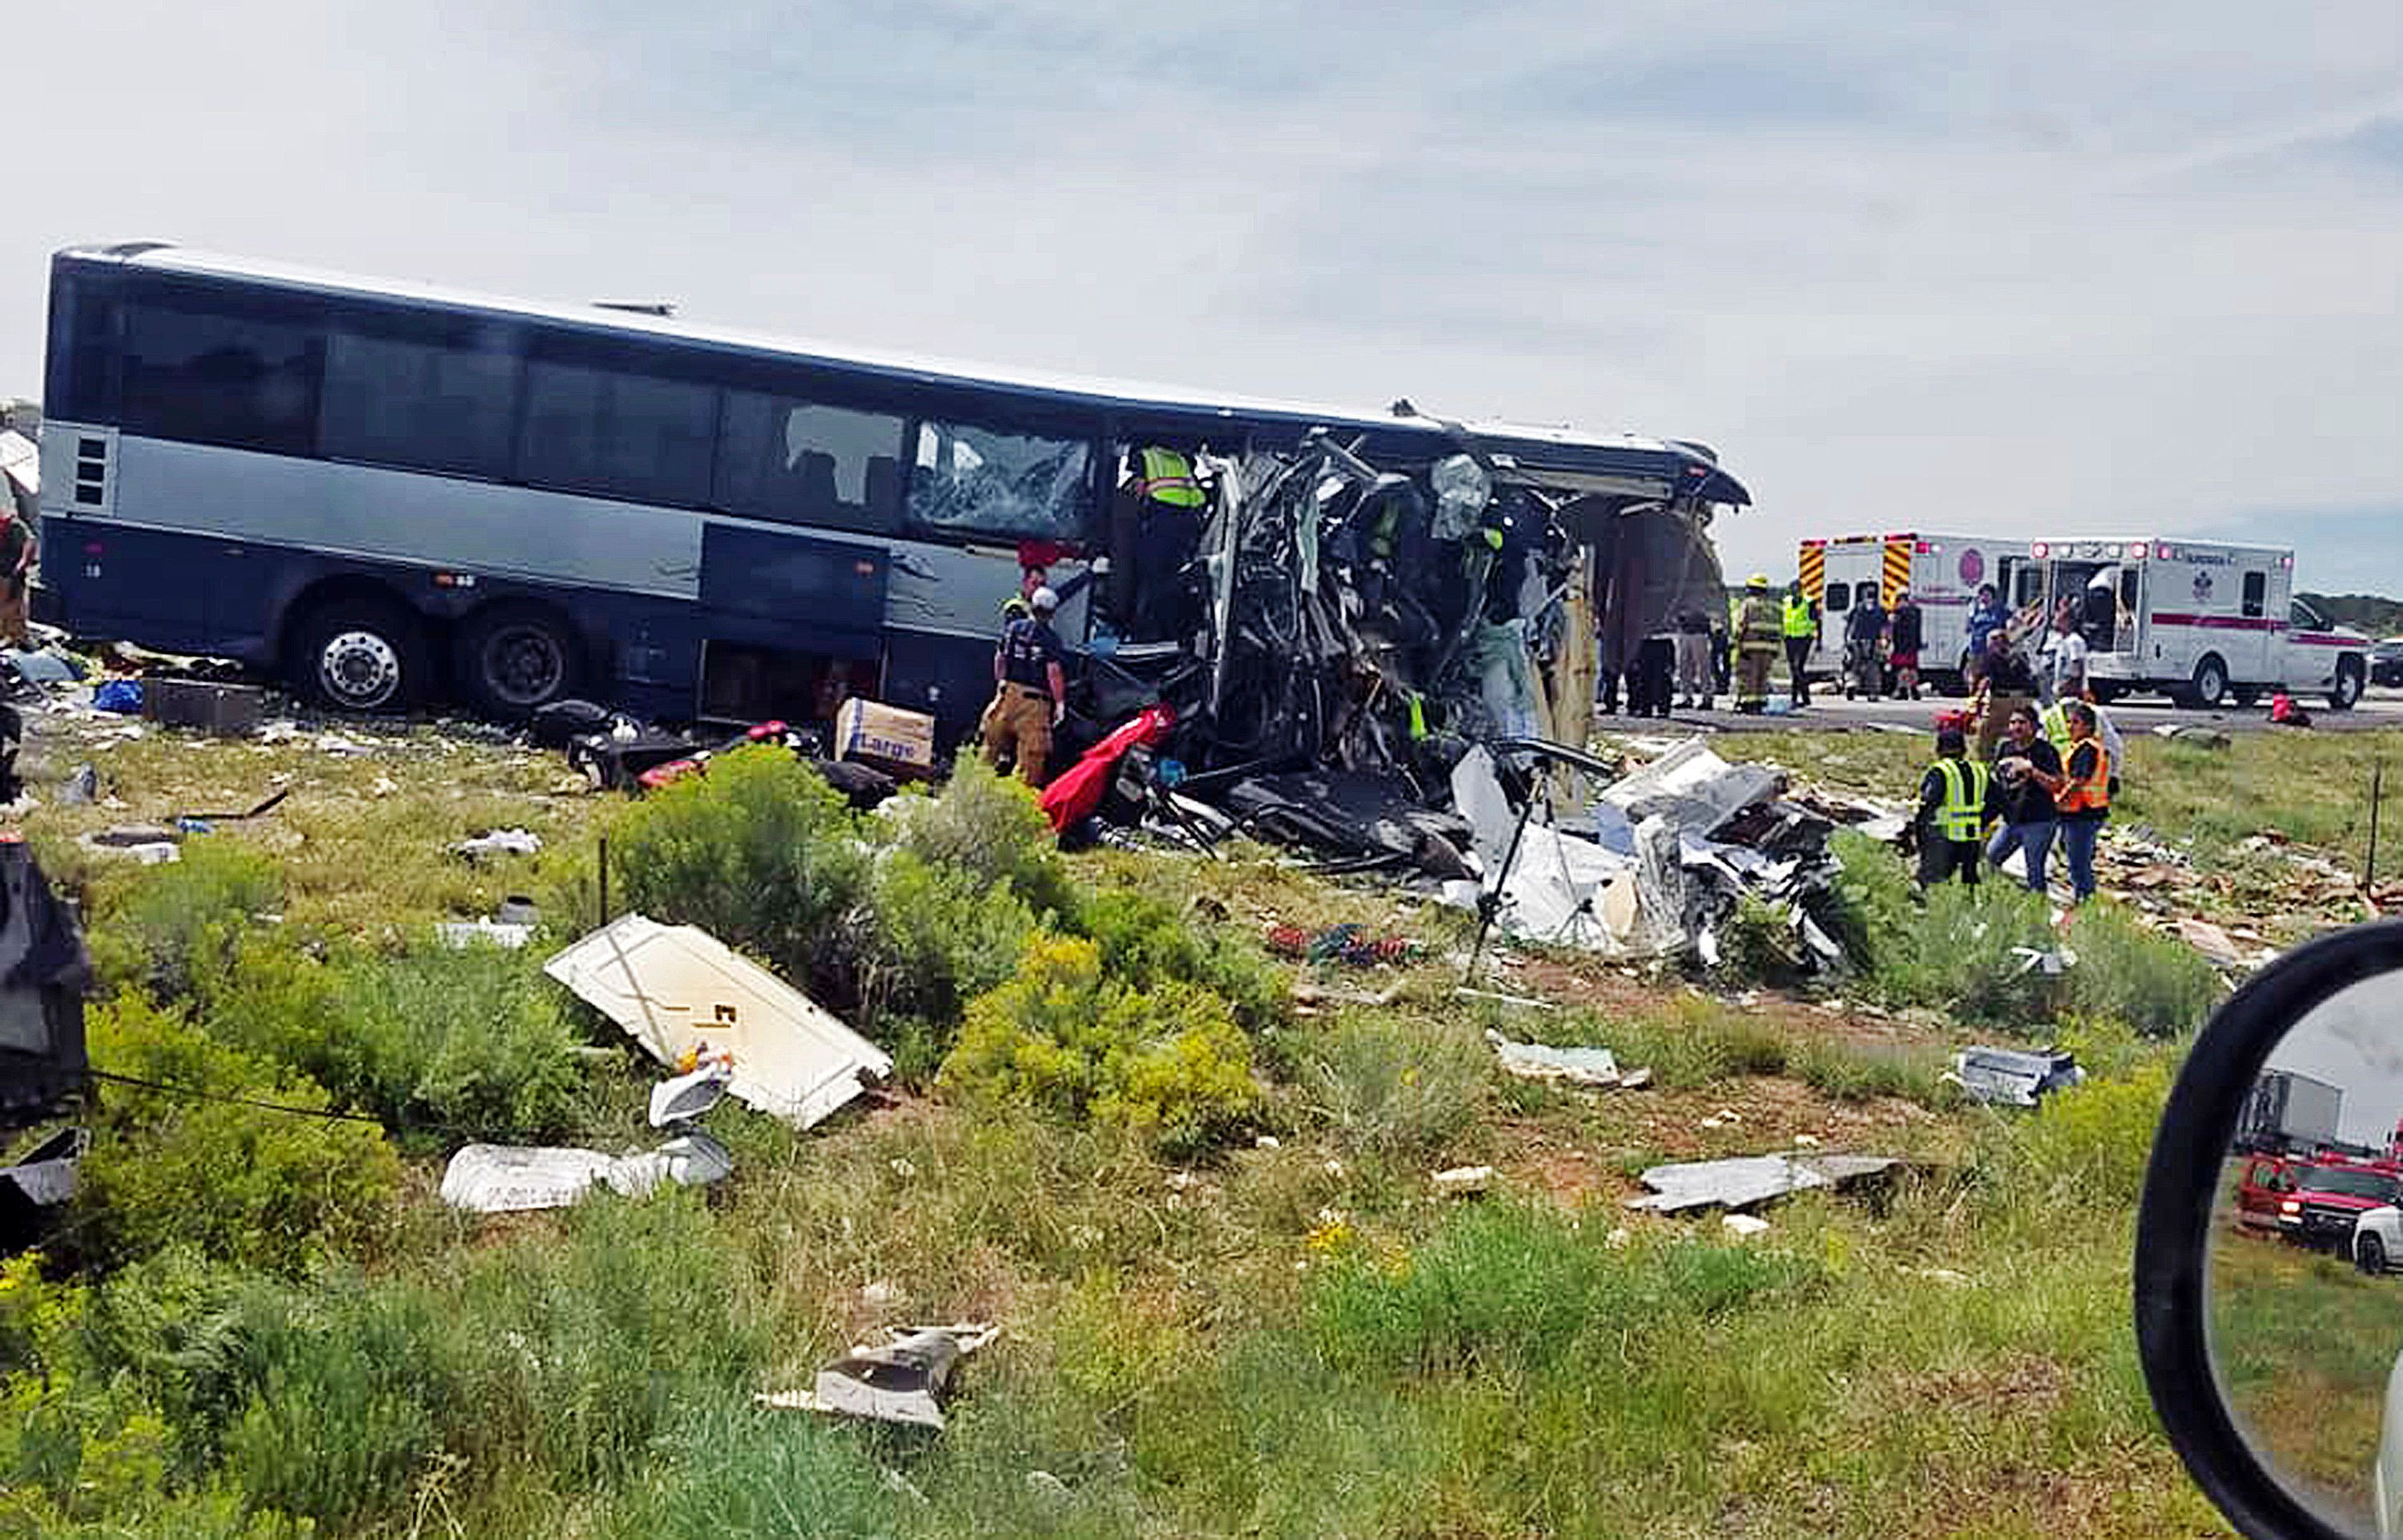 First responders work the scene of a collision between a Greyhound passenger bus and a semi-truck on Interstate 40 near the town of Thoreau NM near the Arizona border Thursday Aug 30 2018